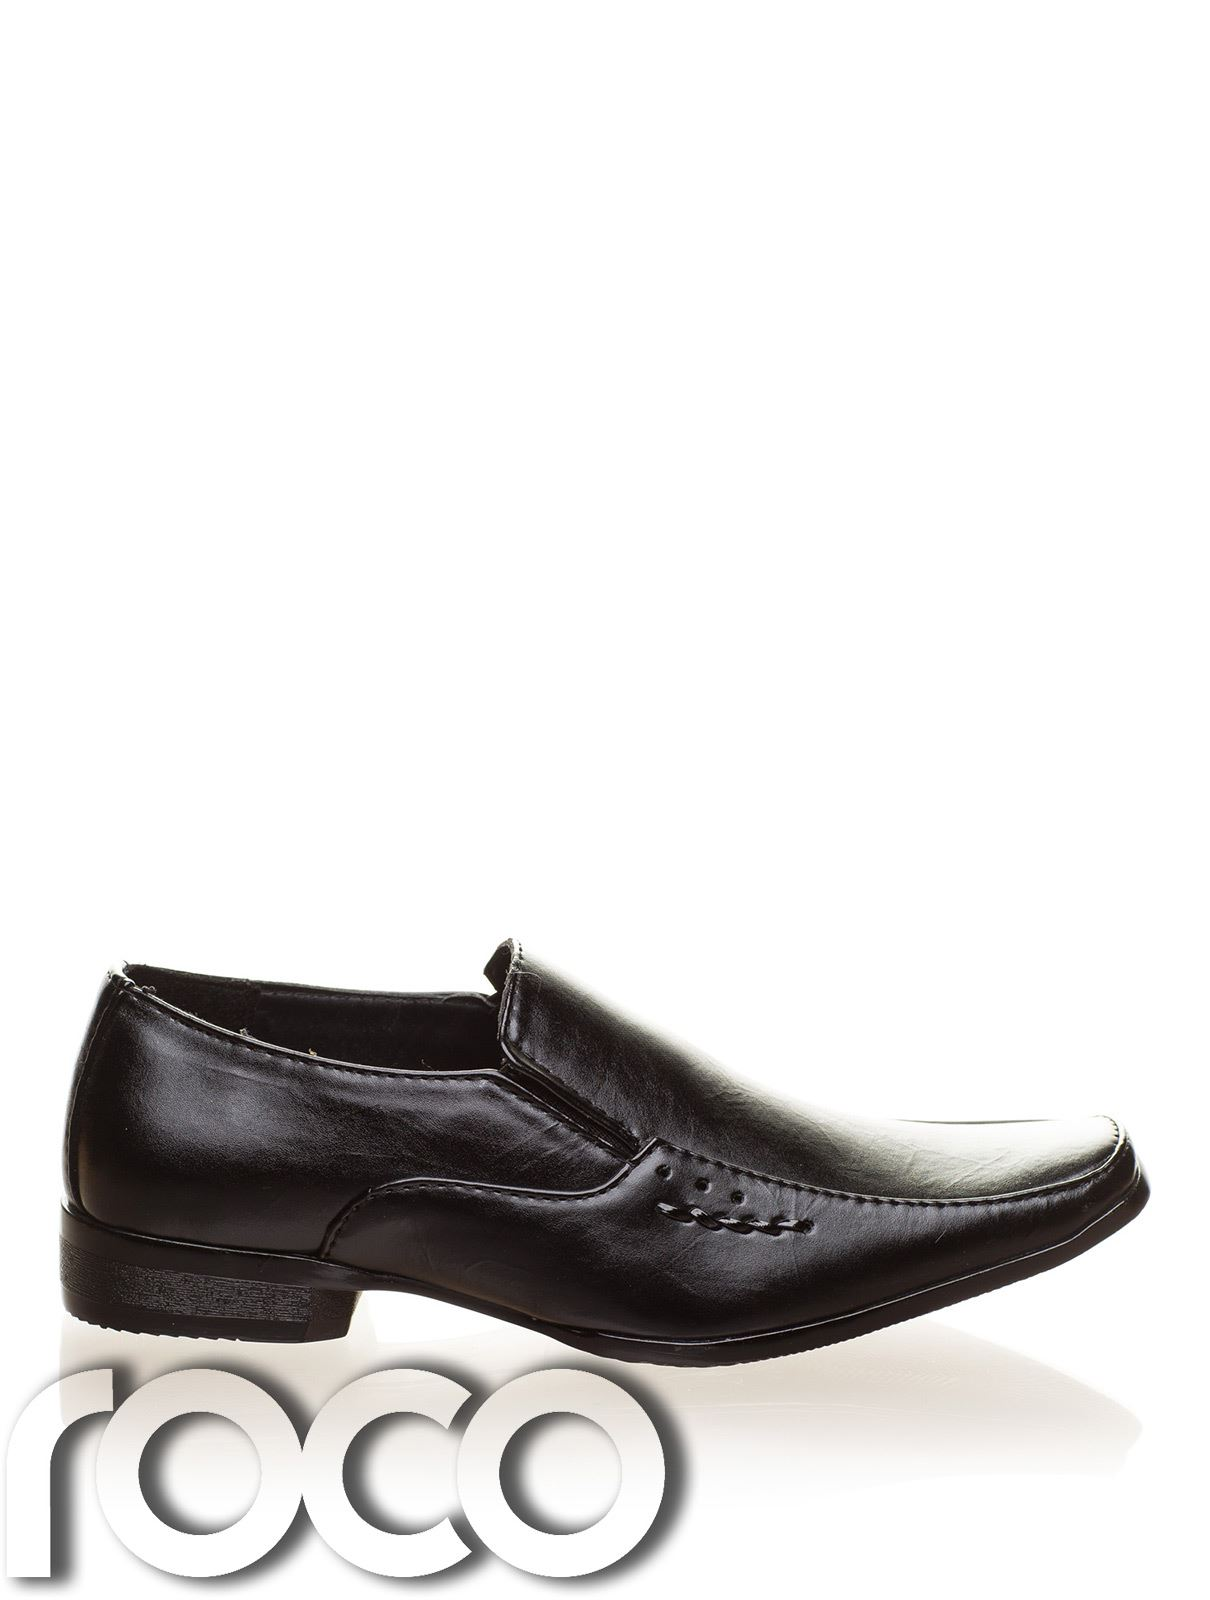 Boys' Shoes. Introducing our massive collection of boys shoes; with oxfords, brogues, slip-ons and lace-ups over a range of materials, whatever the occasion and whatever your taste, there is a pair for your boy.